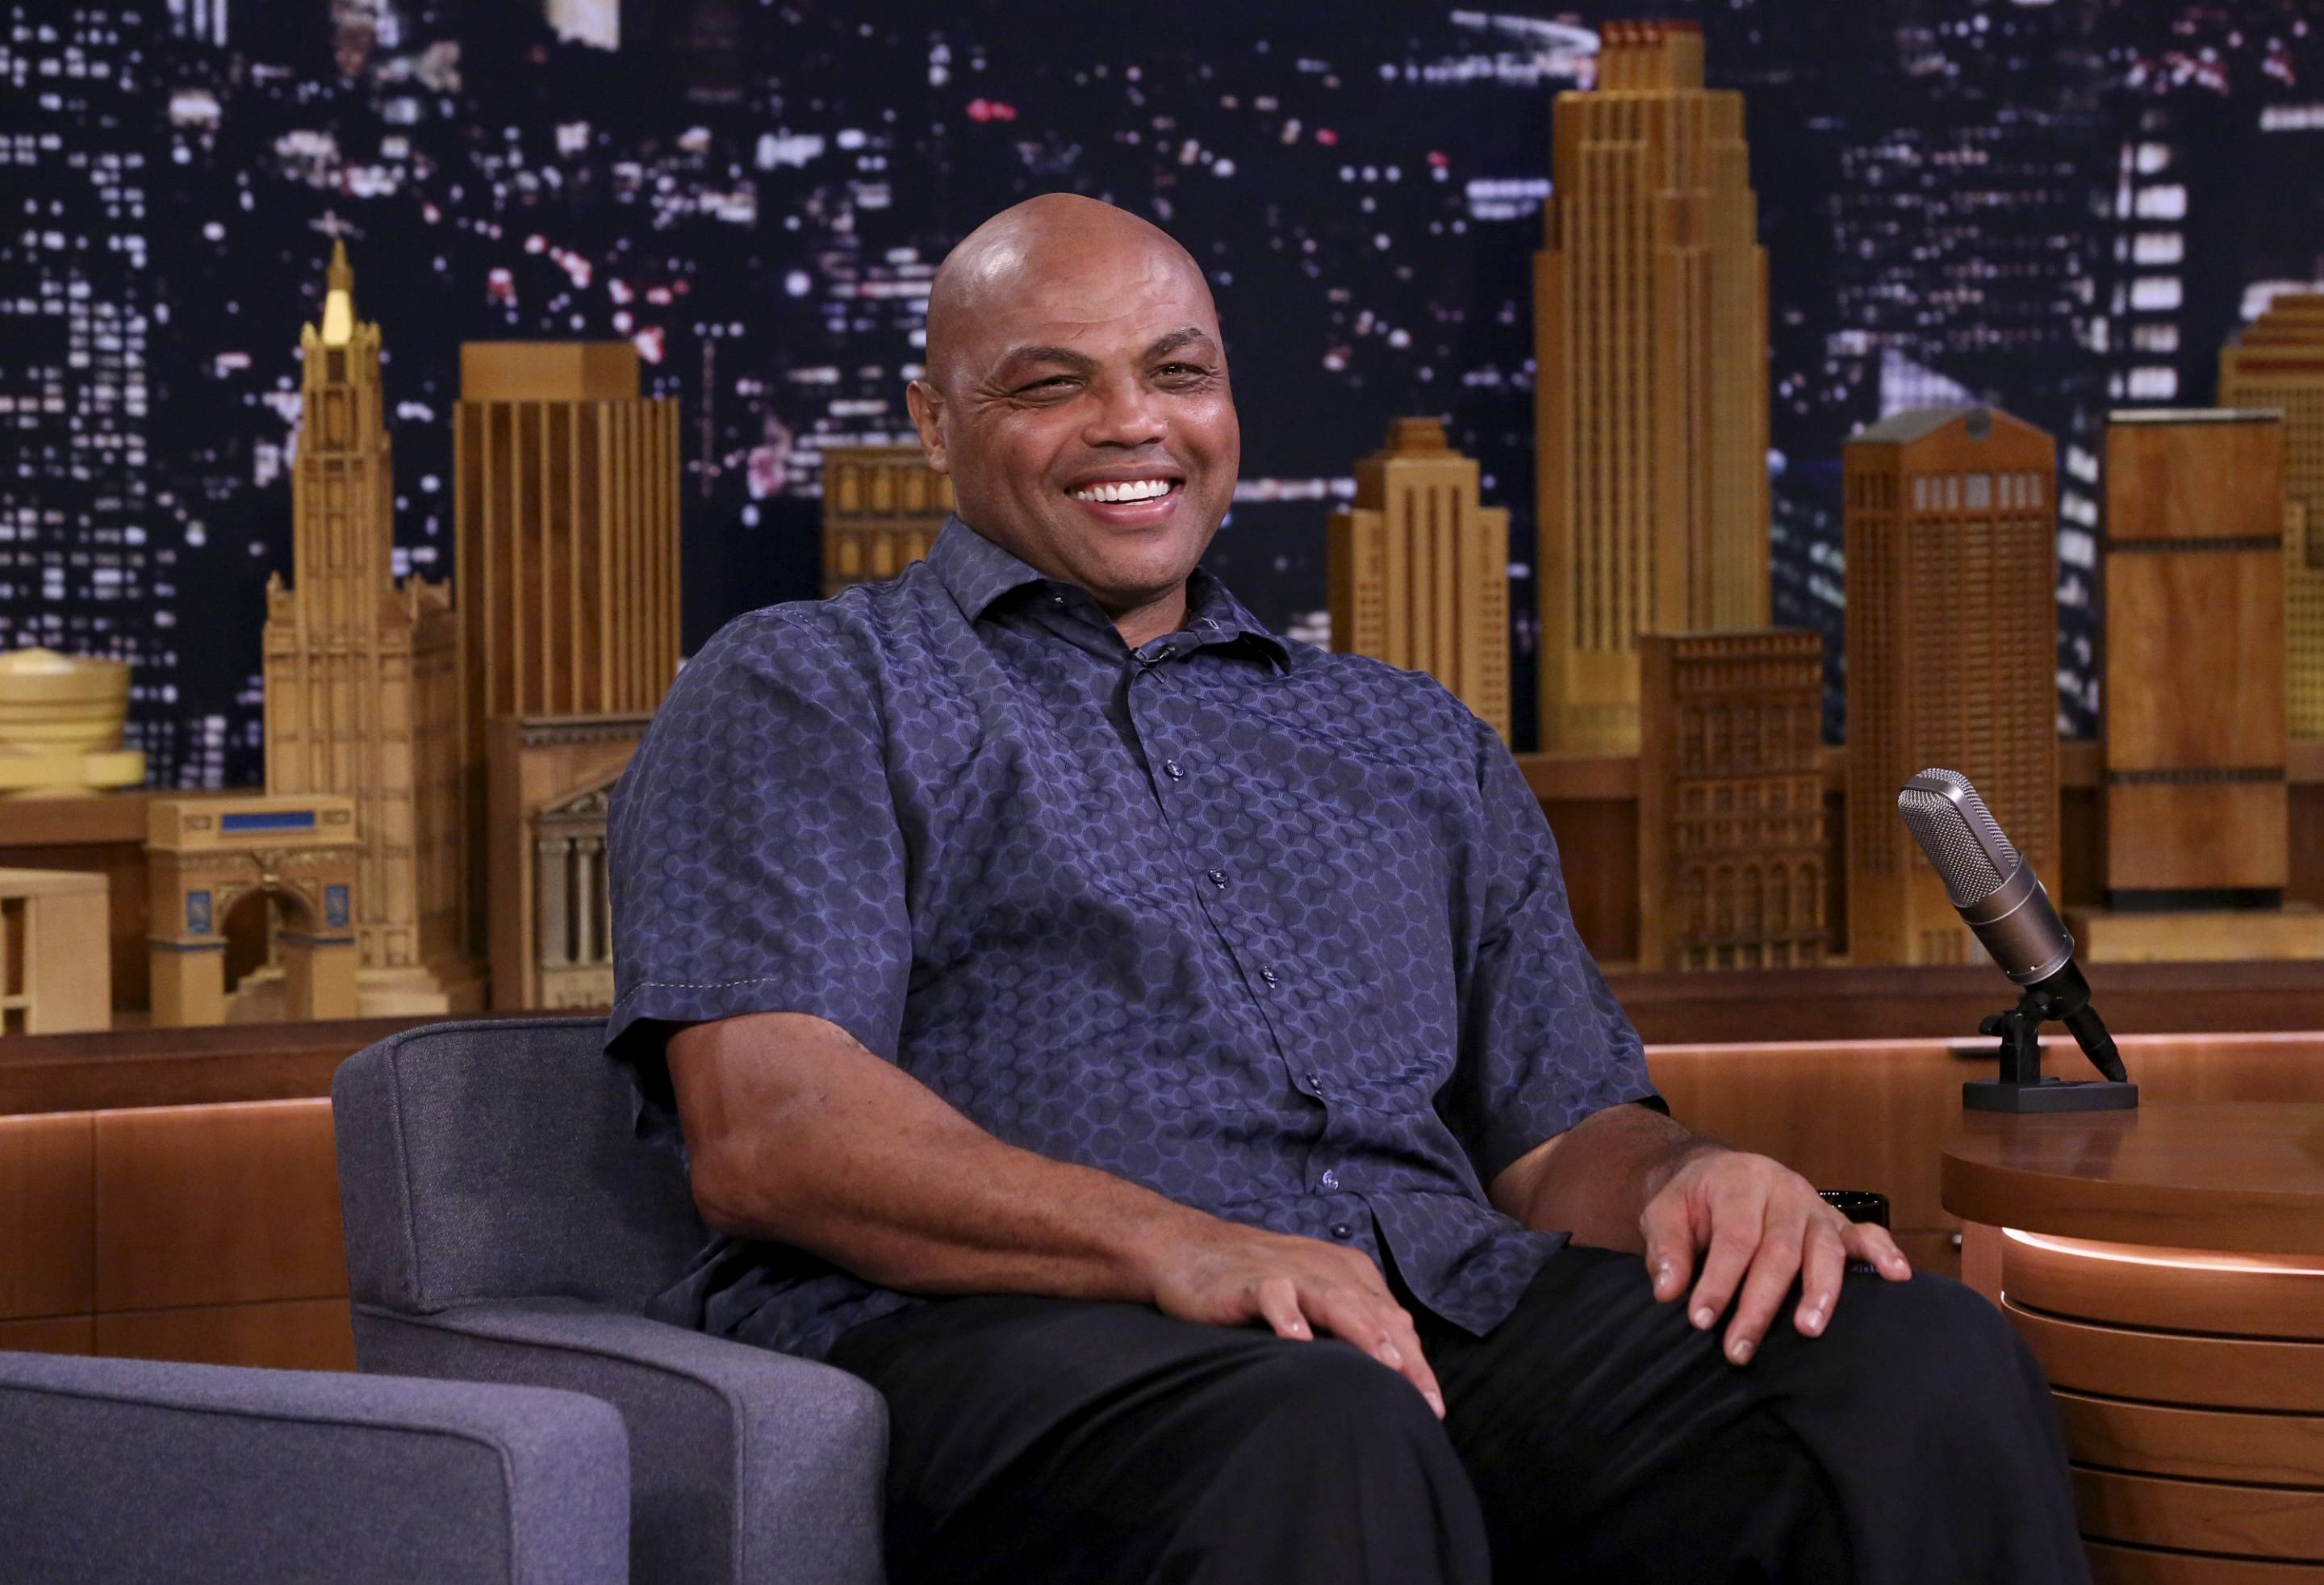 Pictured: Charles Barkley during an interview on October 11, 2018